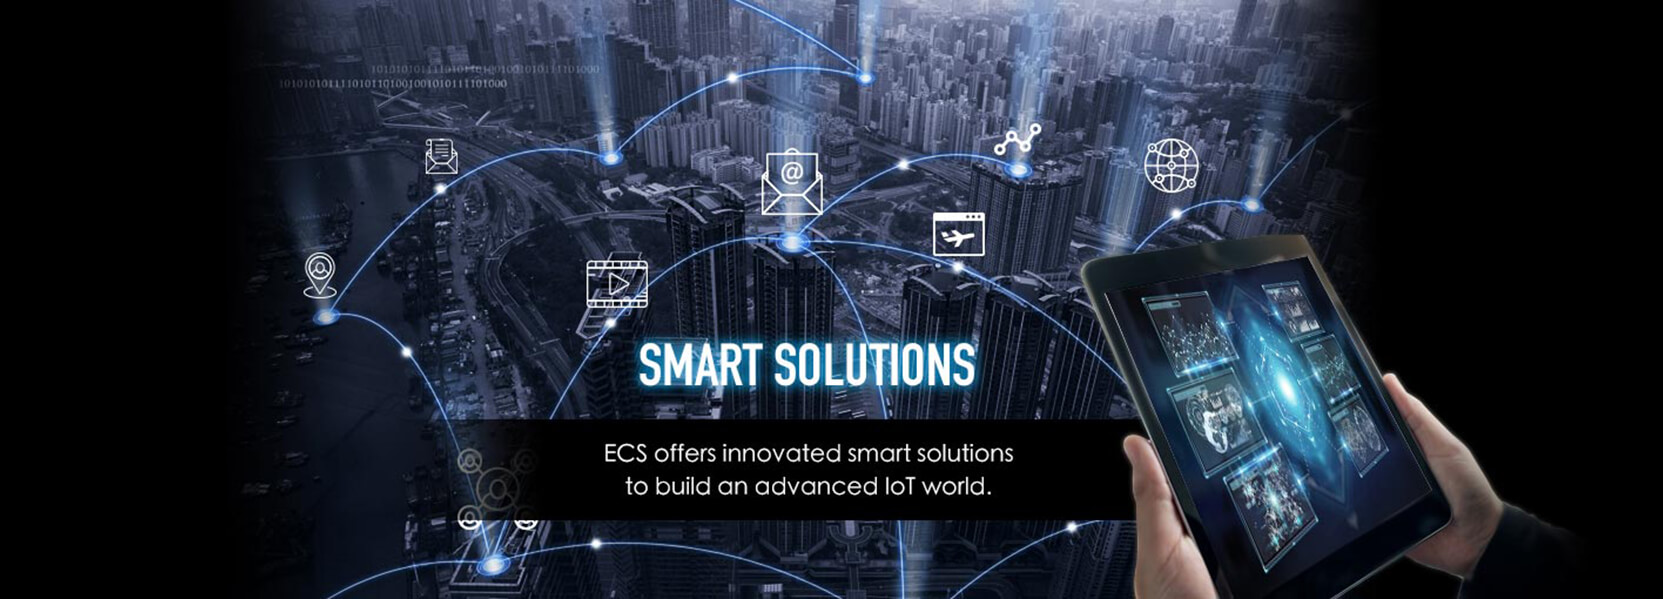 Website_Banner_Smart_Solutions_2